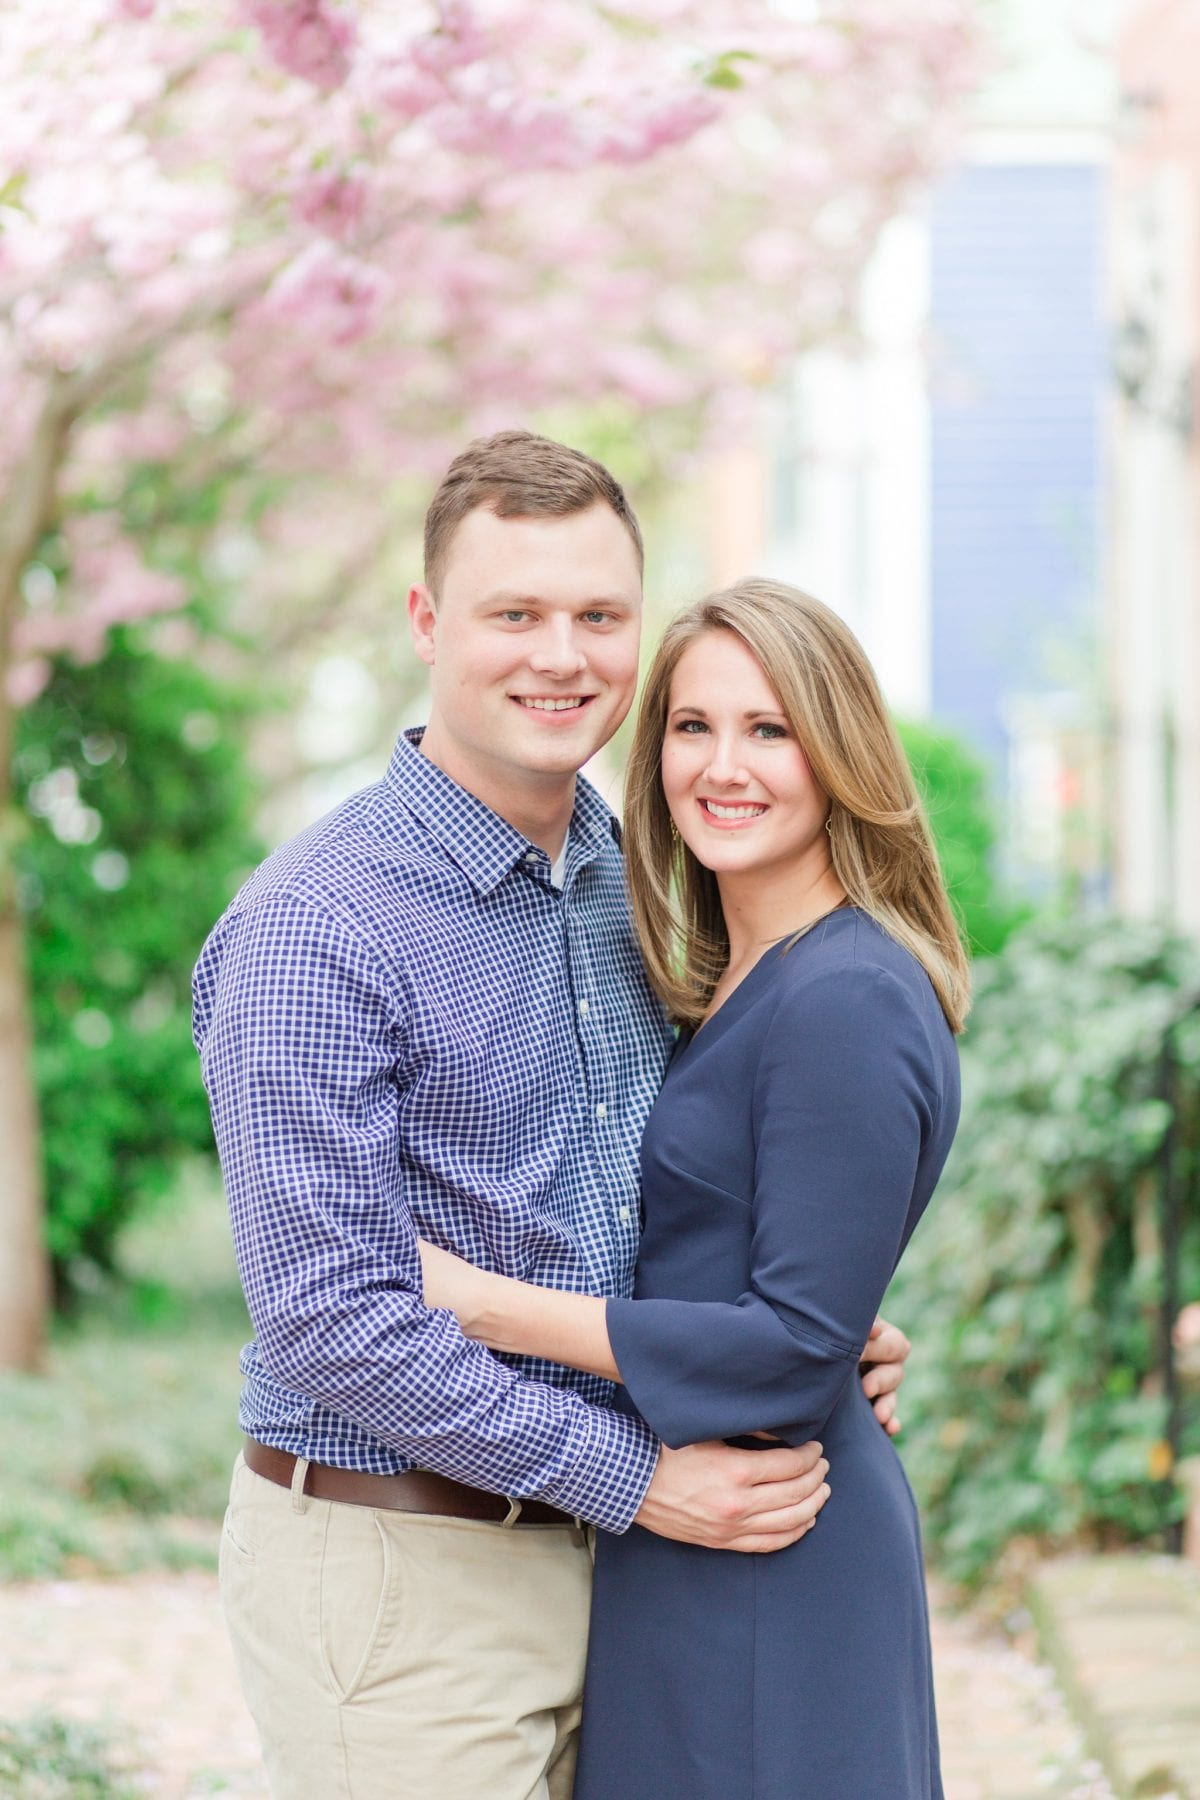 Springtime Old Town Alexandria Engagement Session Matt & Maxie Megan Kelsey Photography-61.jpg